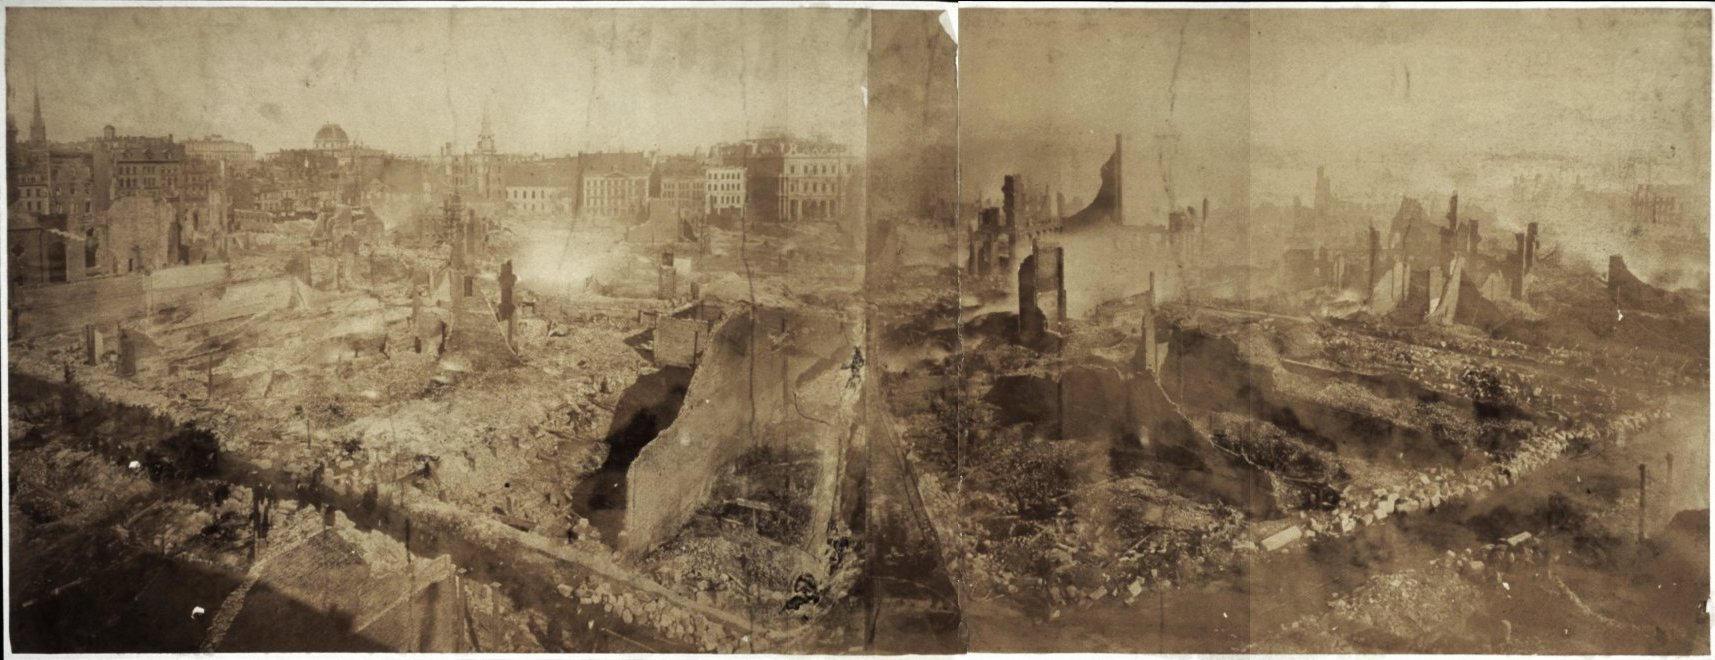 The aftermath of the 1872 fire (image from the Boston Public Library)